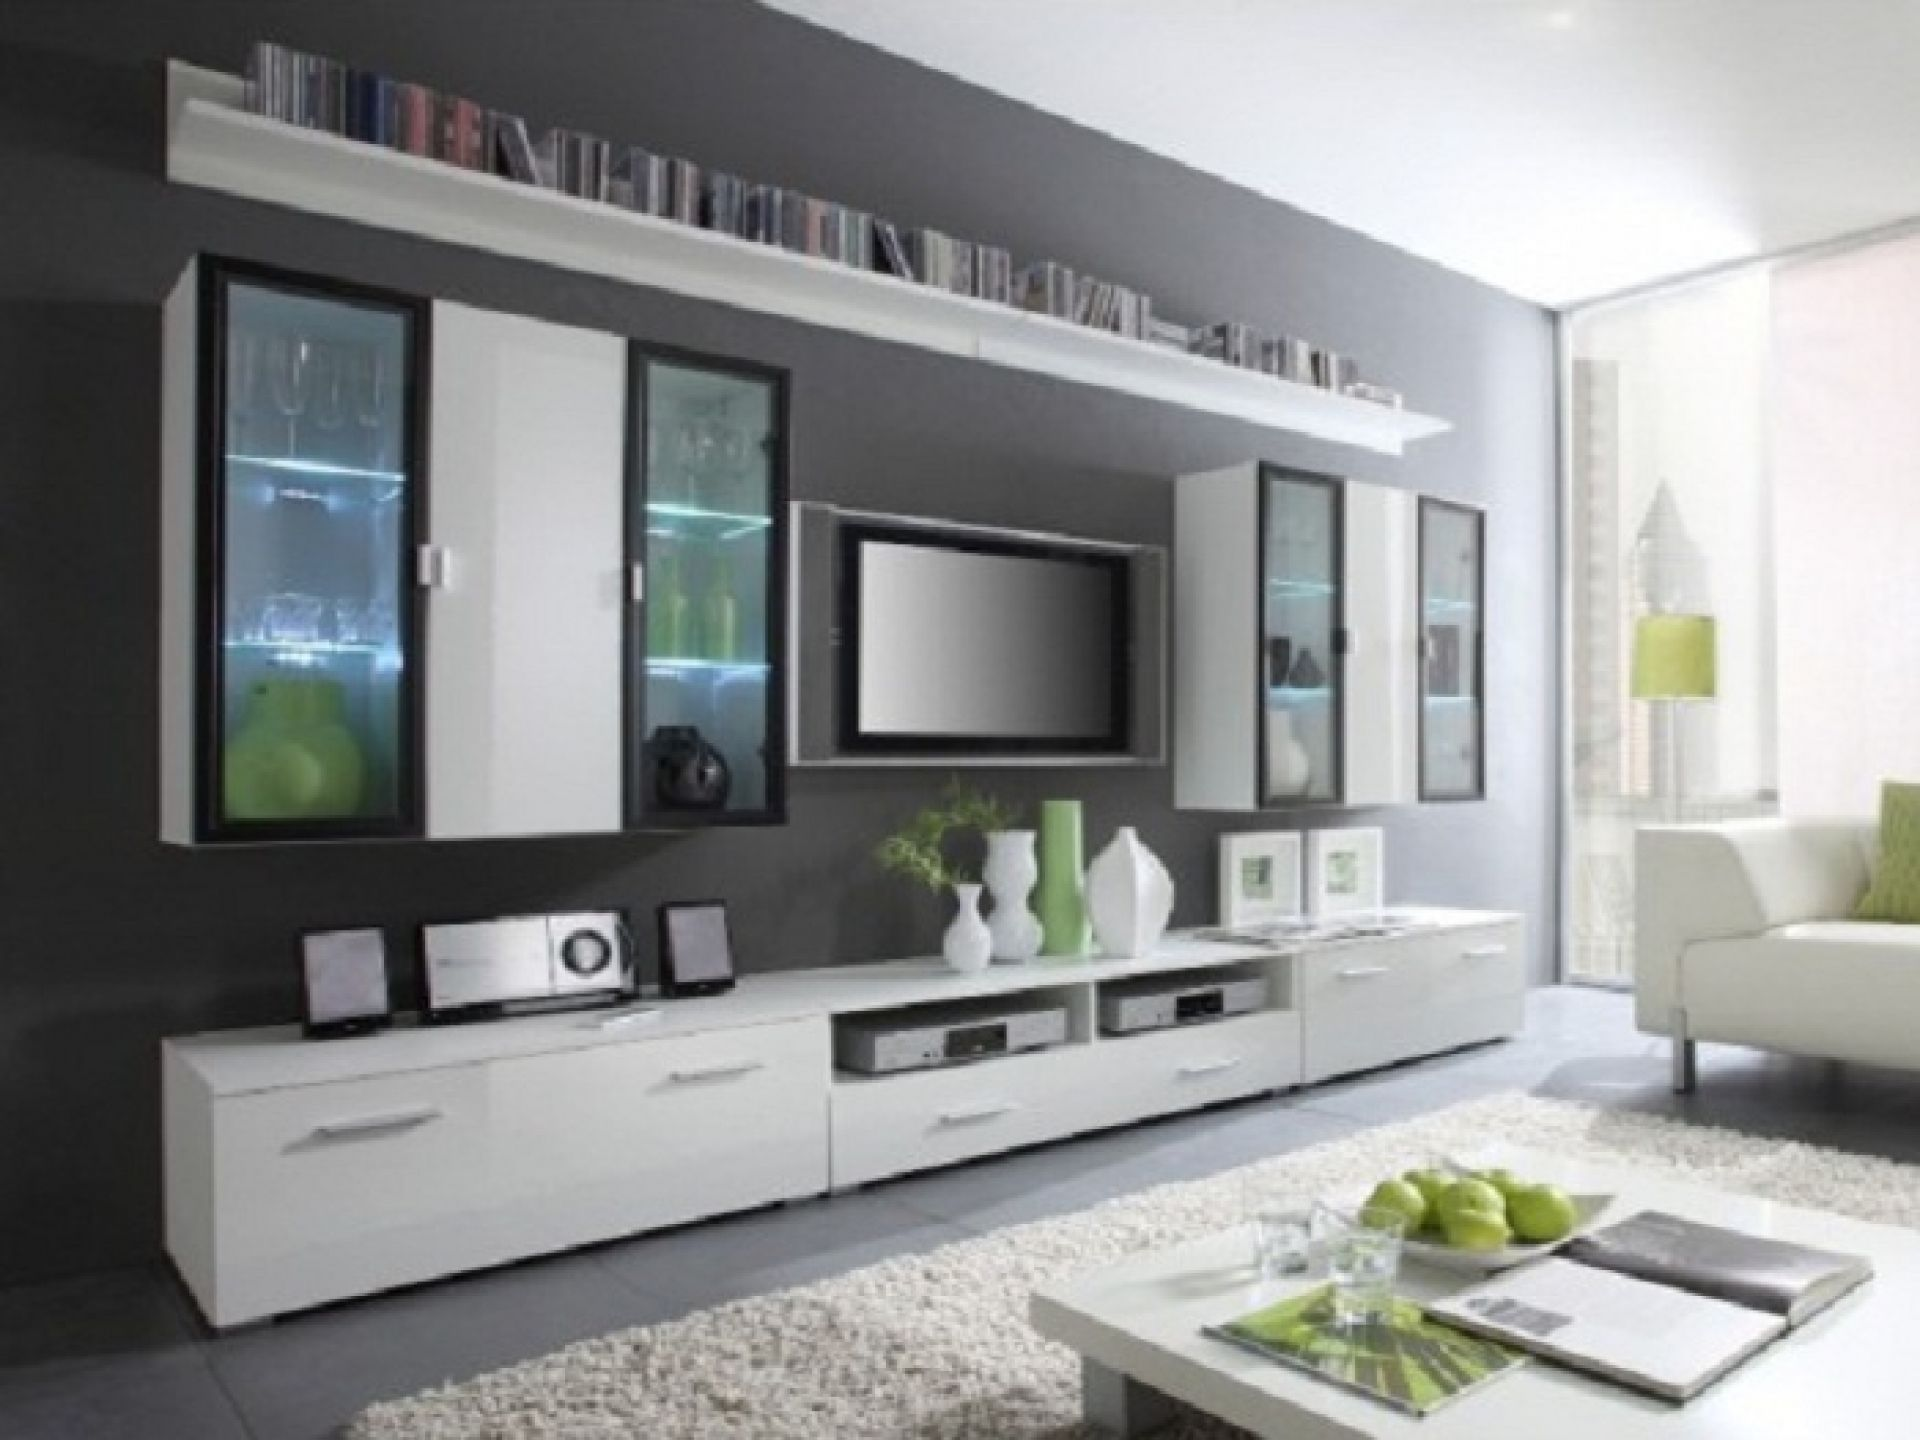 Three Level Mounted TV Wall Units With White Cabinet Ideas Interior Design